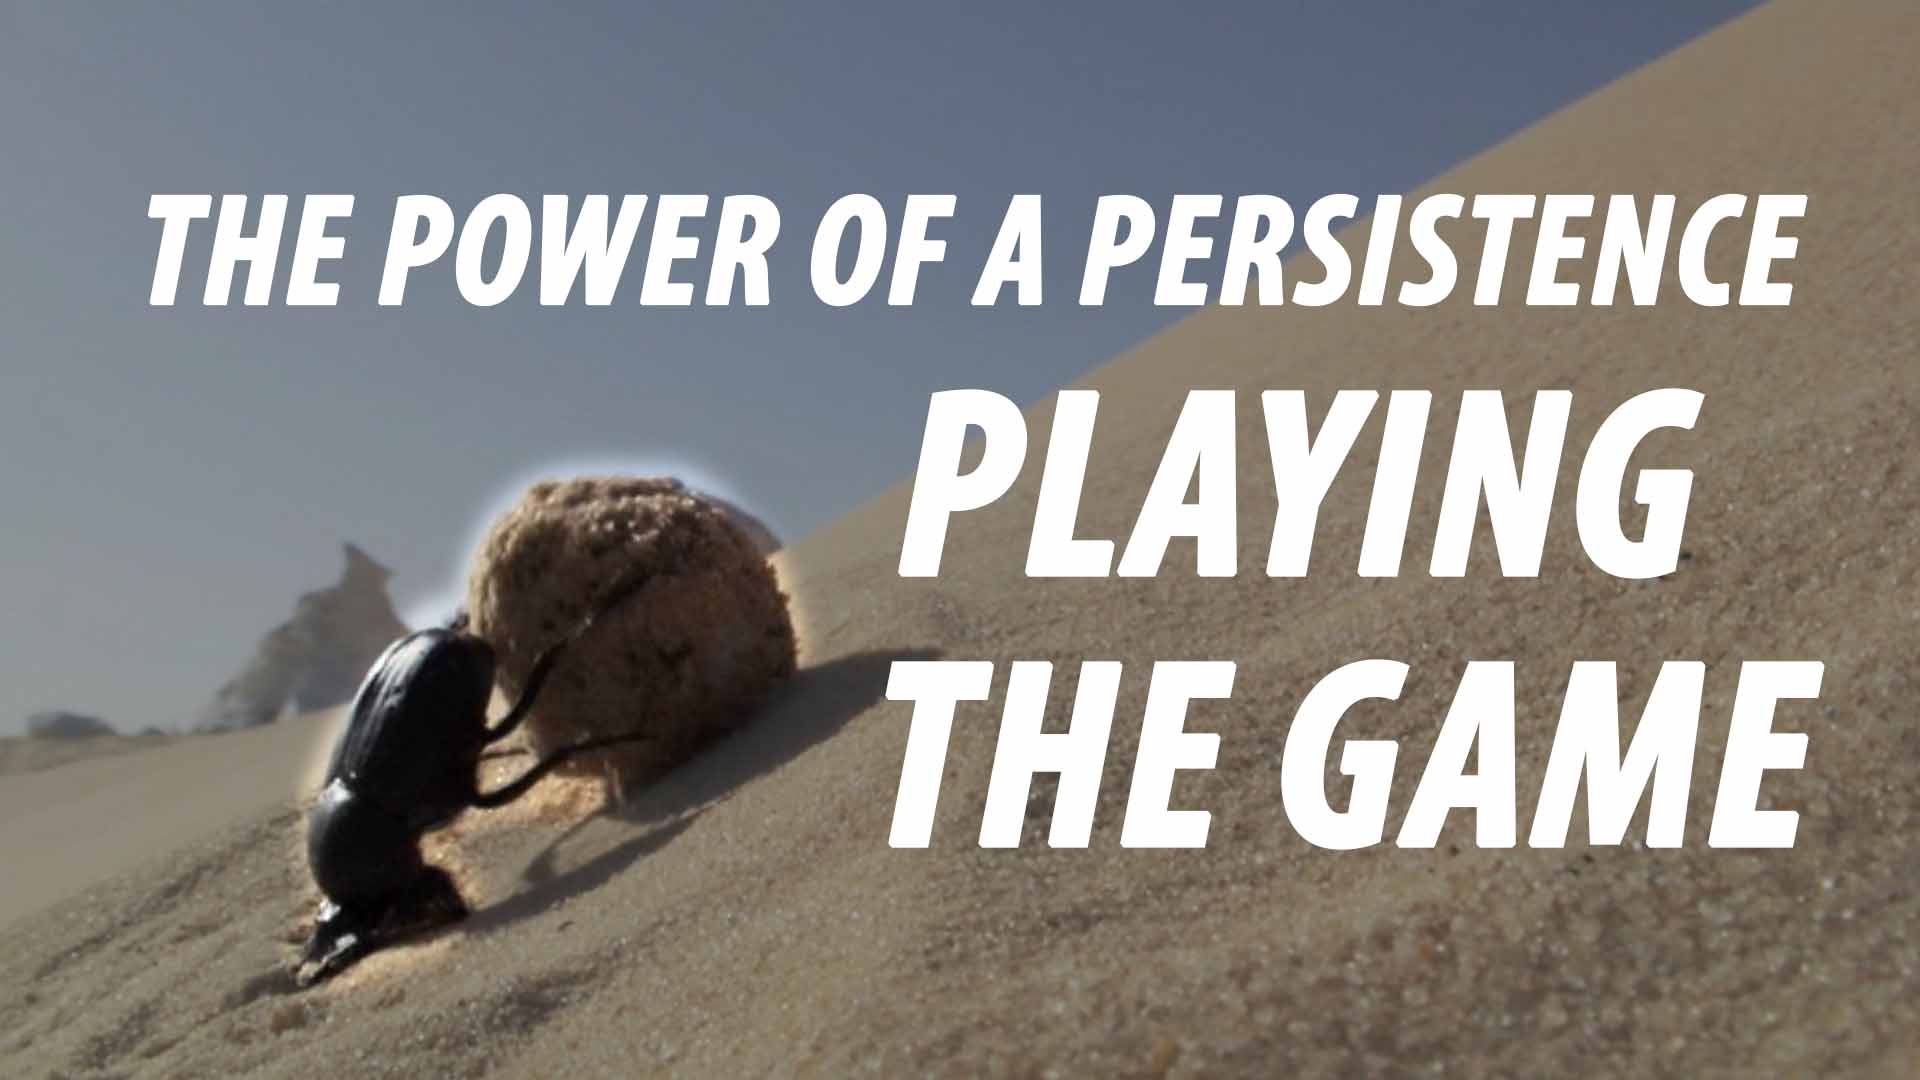 THE POWER OF A PERSISTENCE - PLAYING THE GAME